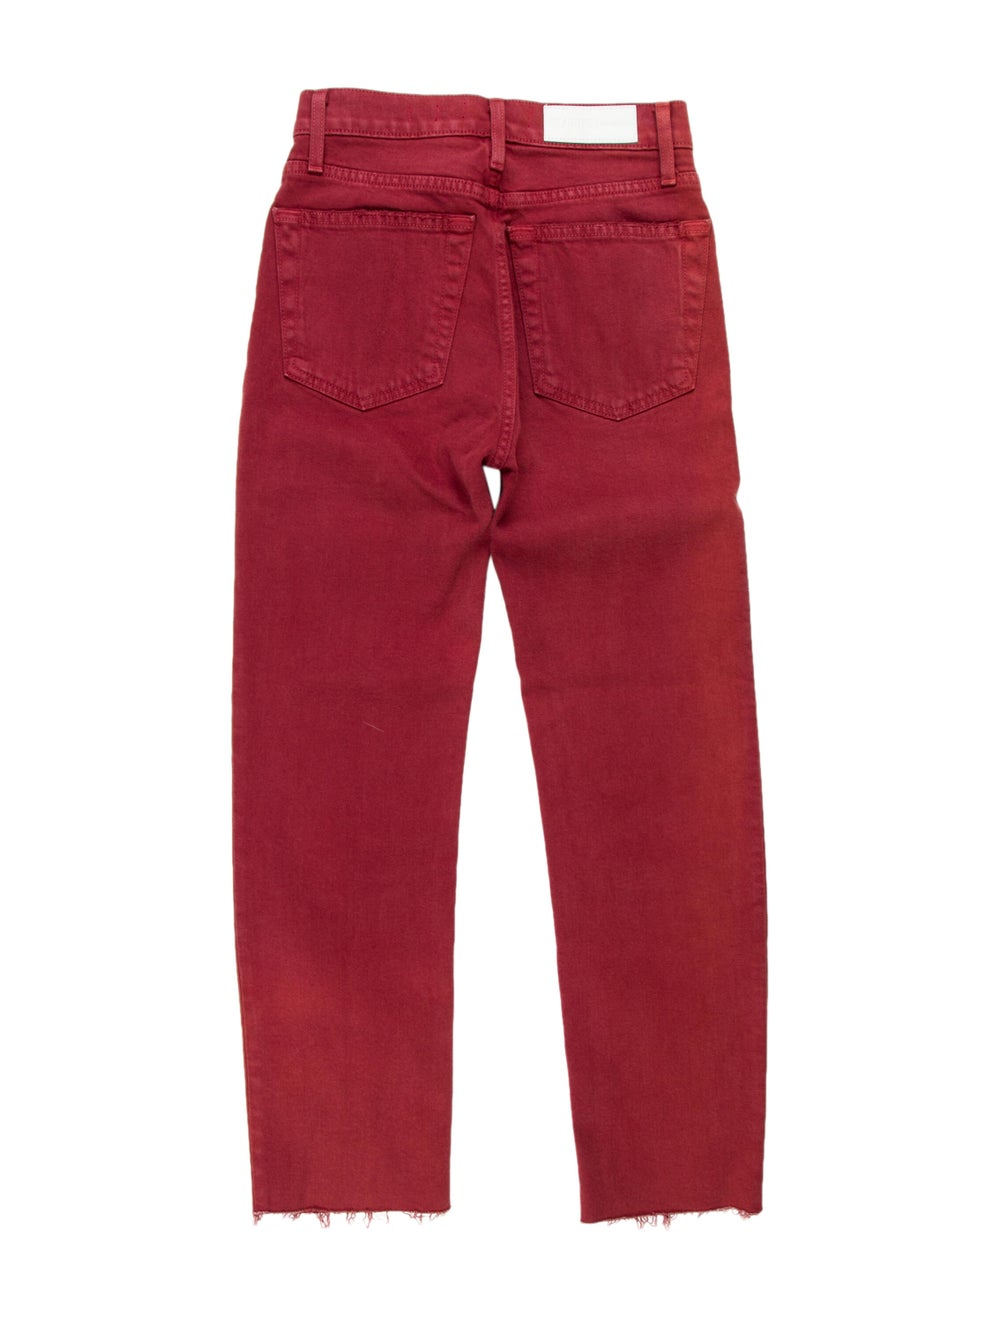 Re/done Mid-Rise Straight Leg Jeans - image 2